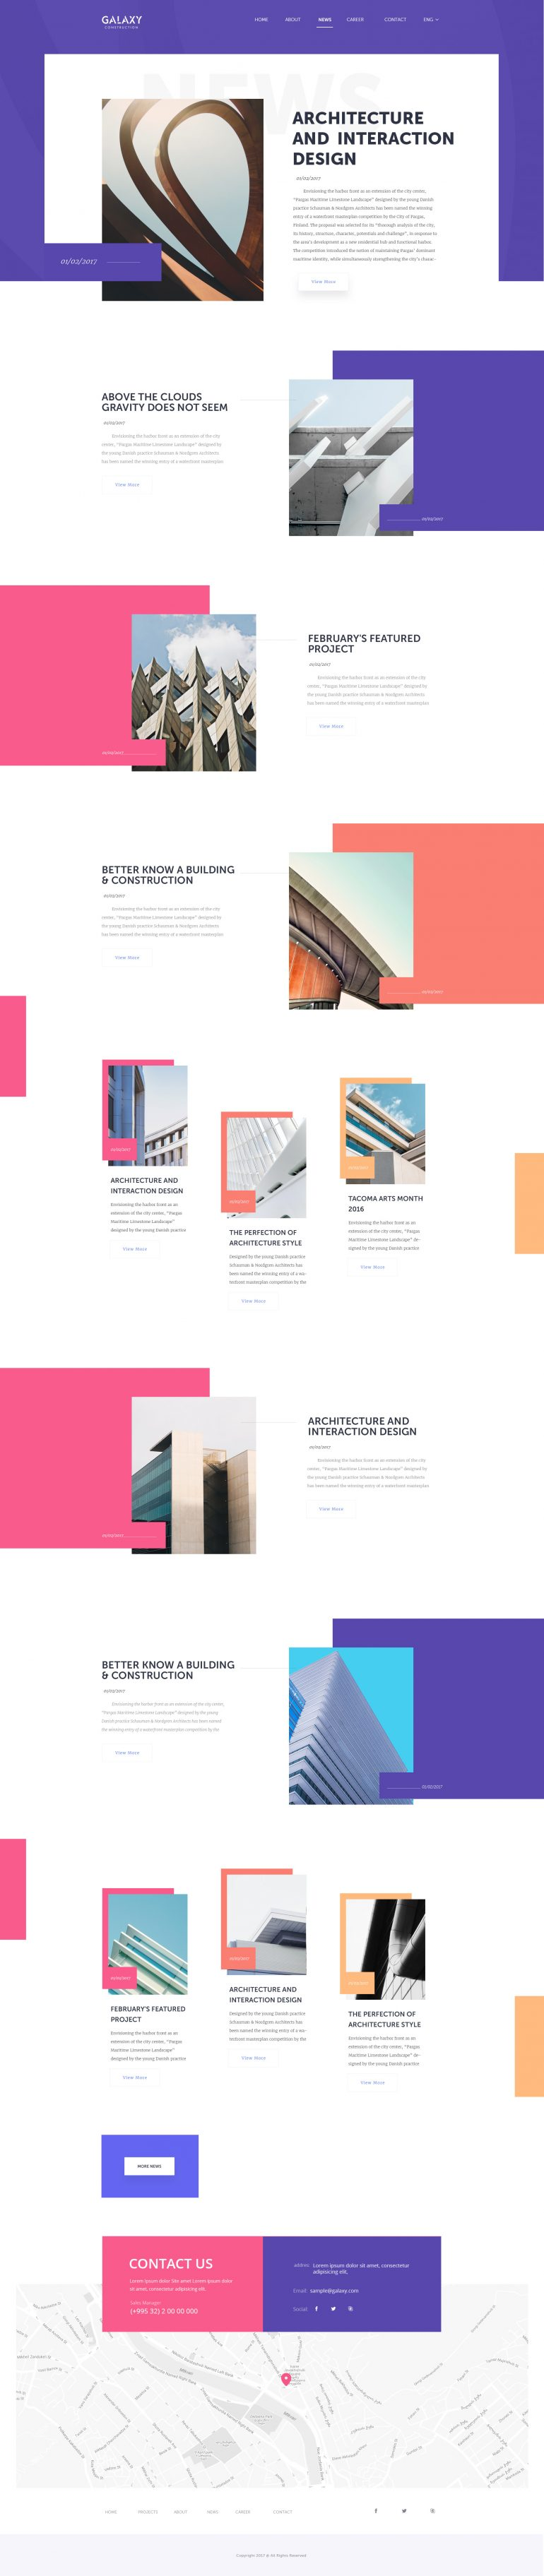 Articles Page For Architecture Website